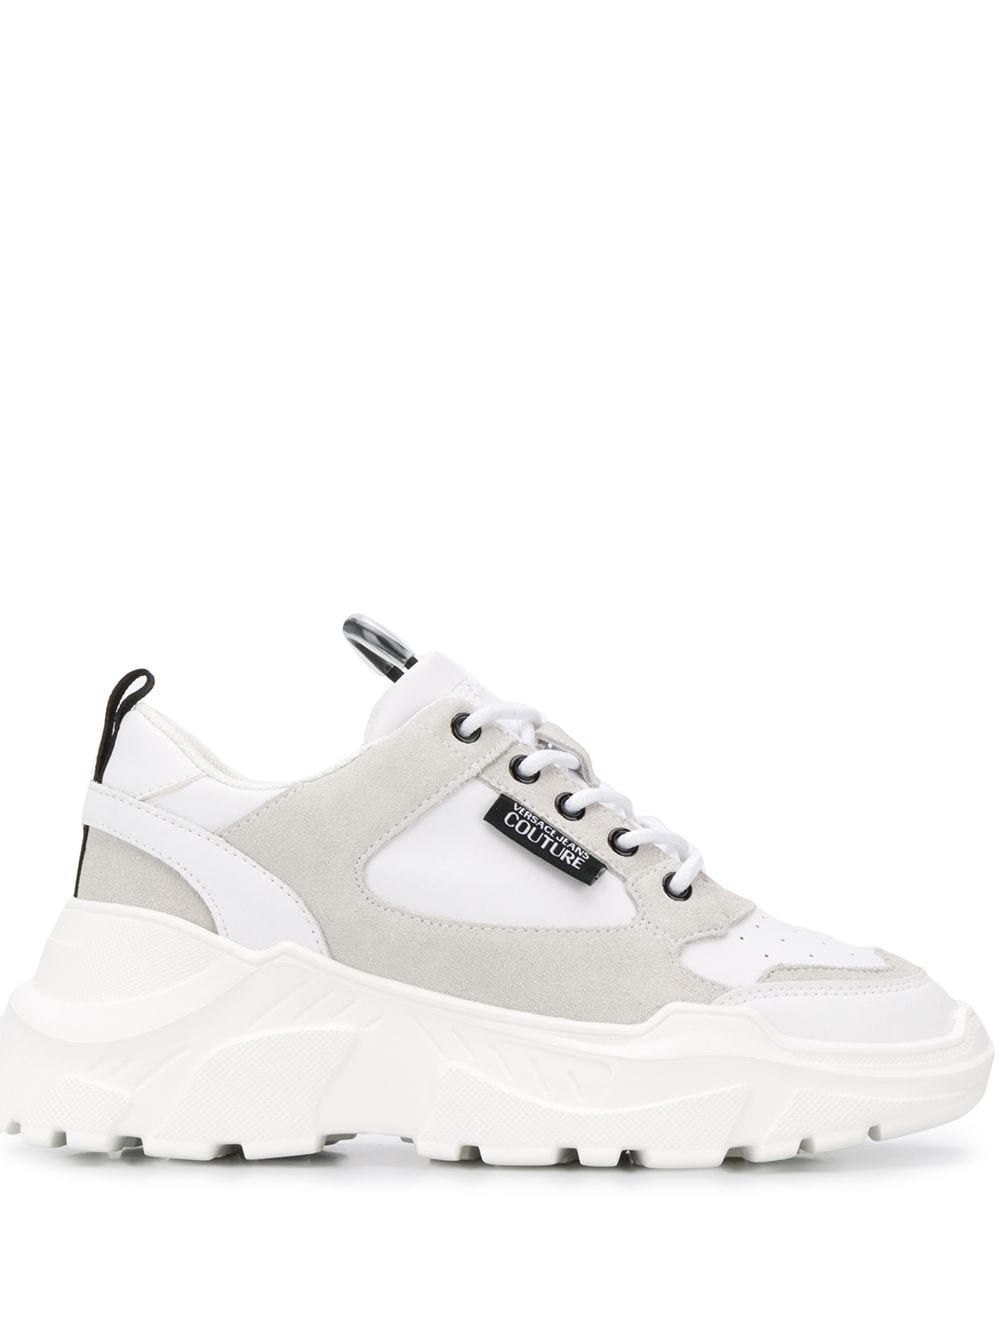 Versace Jeans Couture Chunky Sole Low Top Sneakers Farfetch Sneakers Sketchers Shoes Women Versace Sneakers